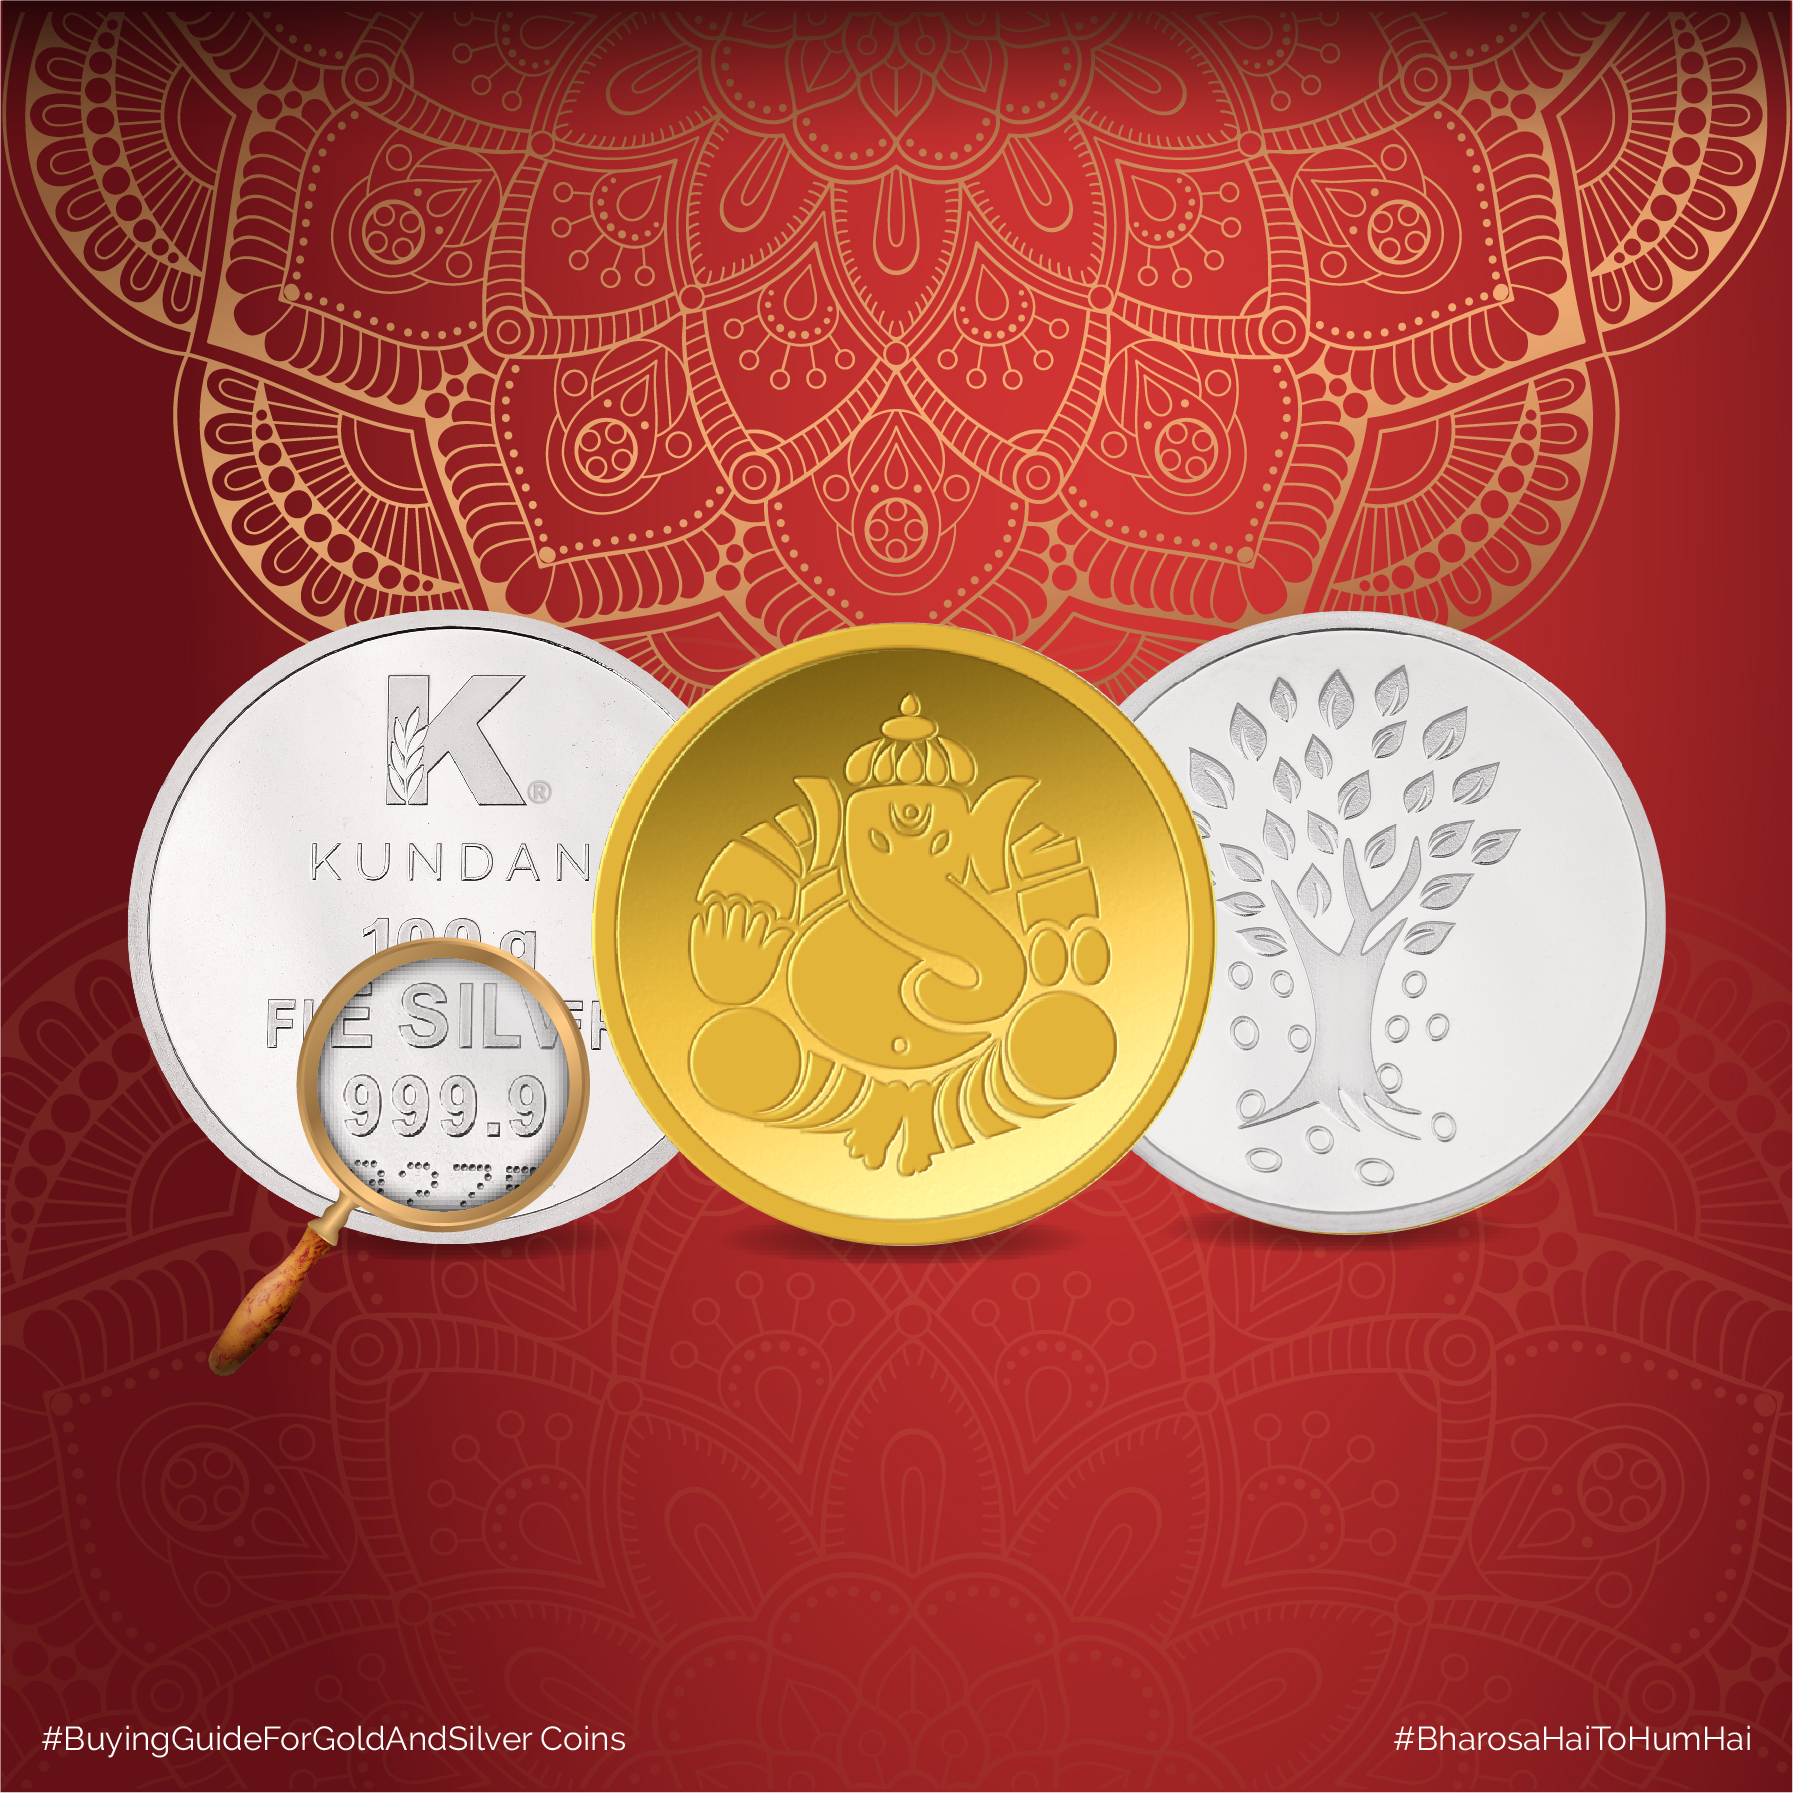 What do we need to keep in mind while buying Gold & Silver Coins